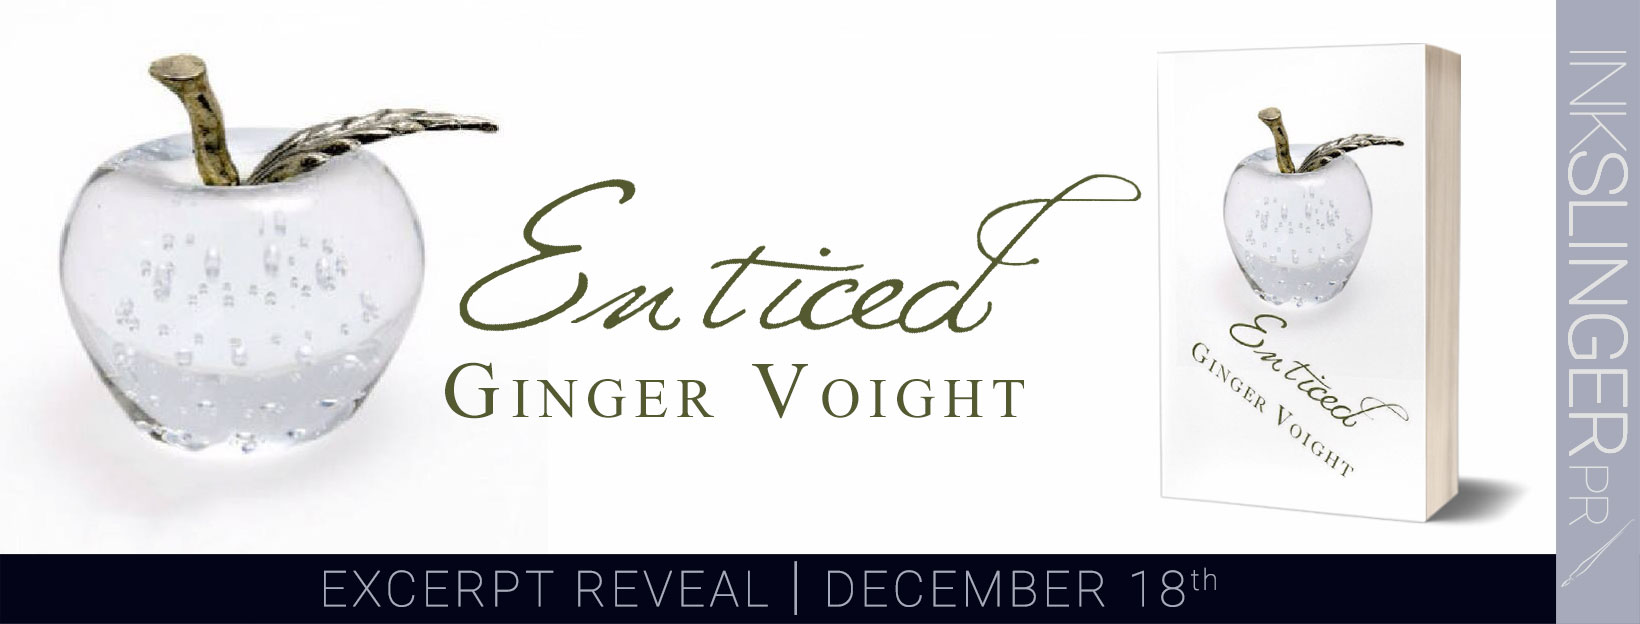 Enticed_excerpt reveal